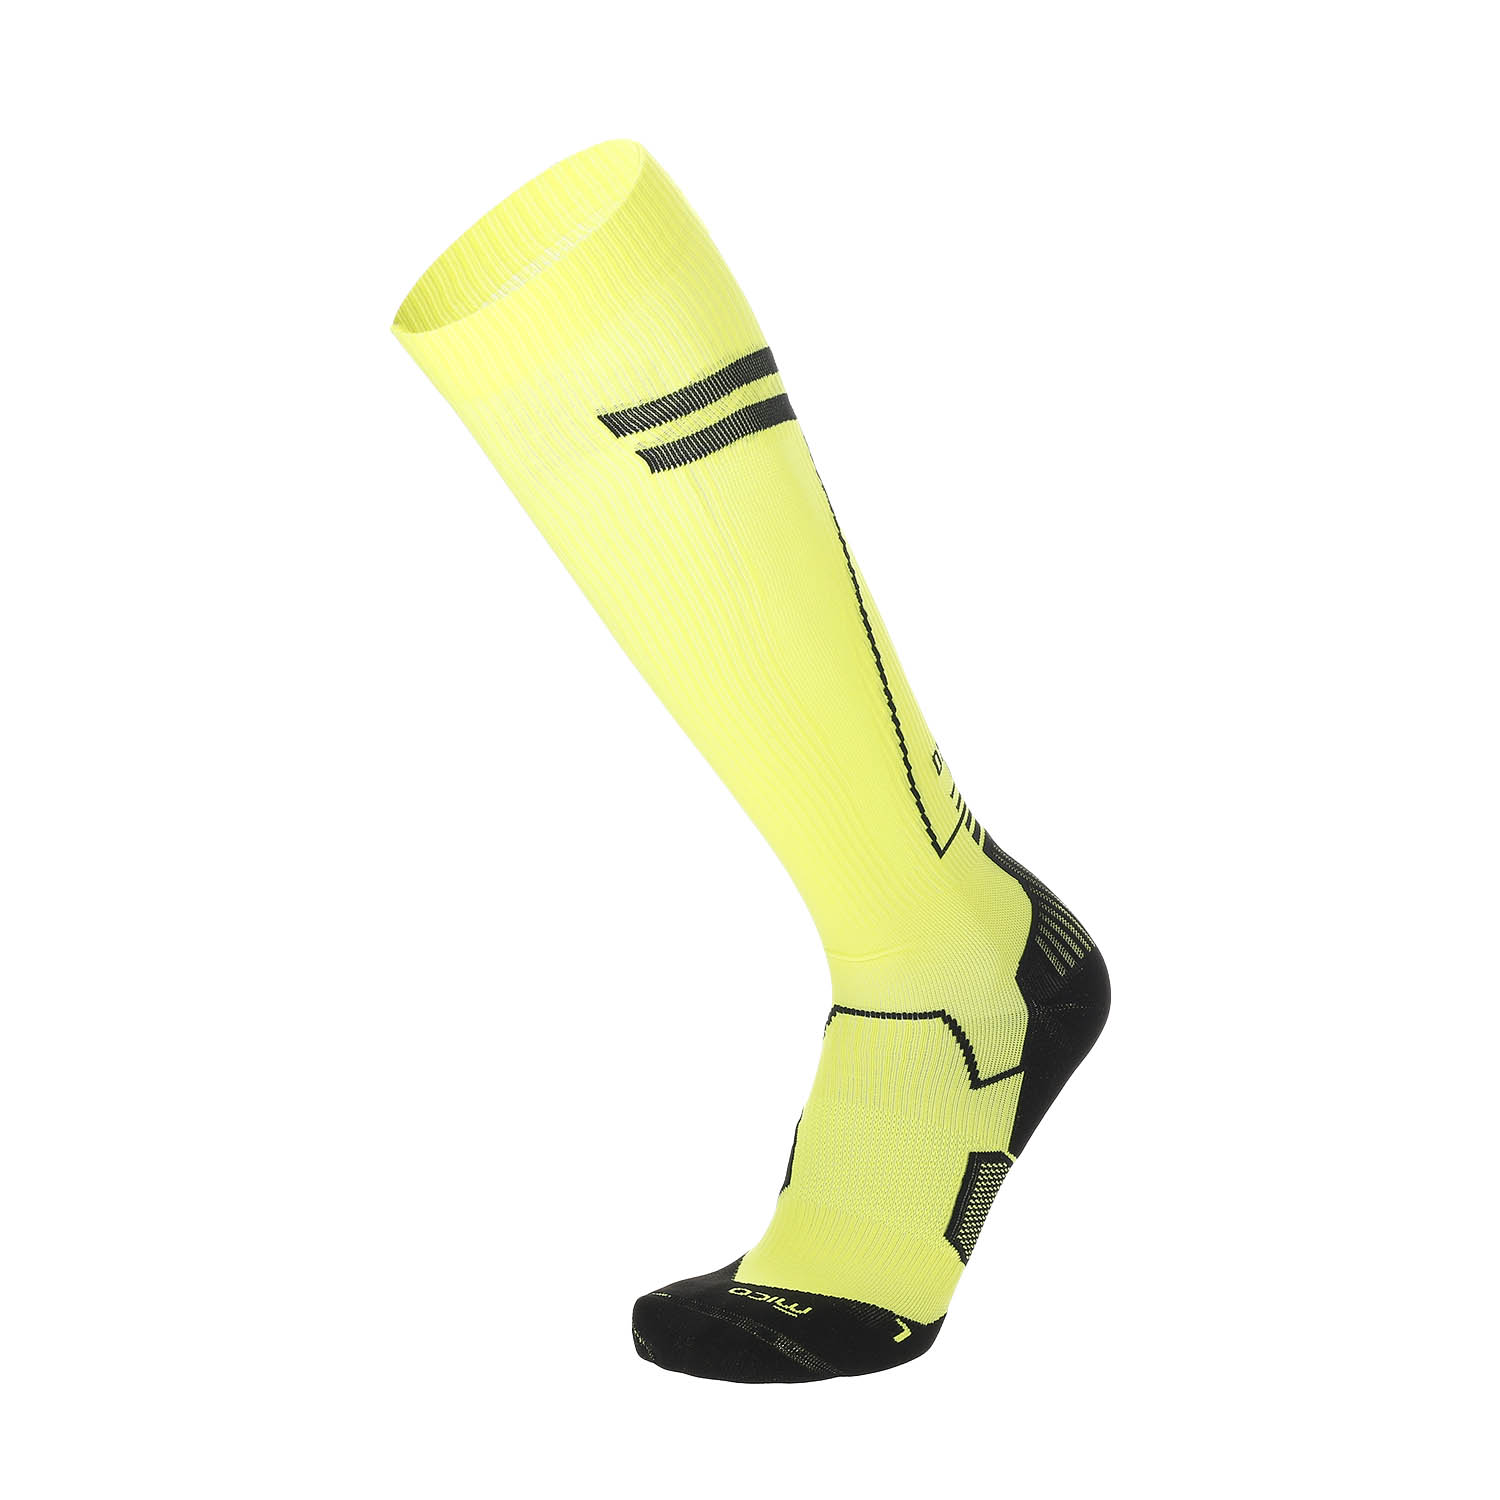 Mico Oxi-jet Medium Weight Compression Calcetines - Giallo Fluo